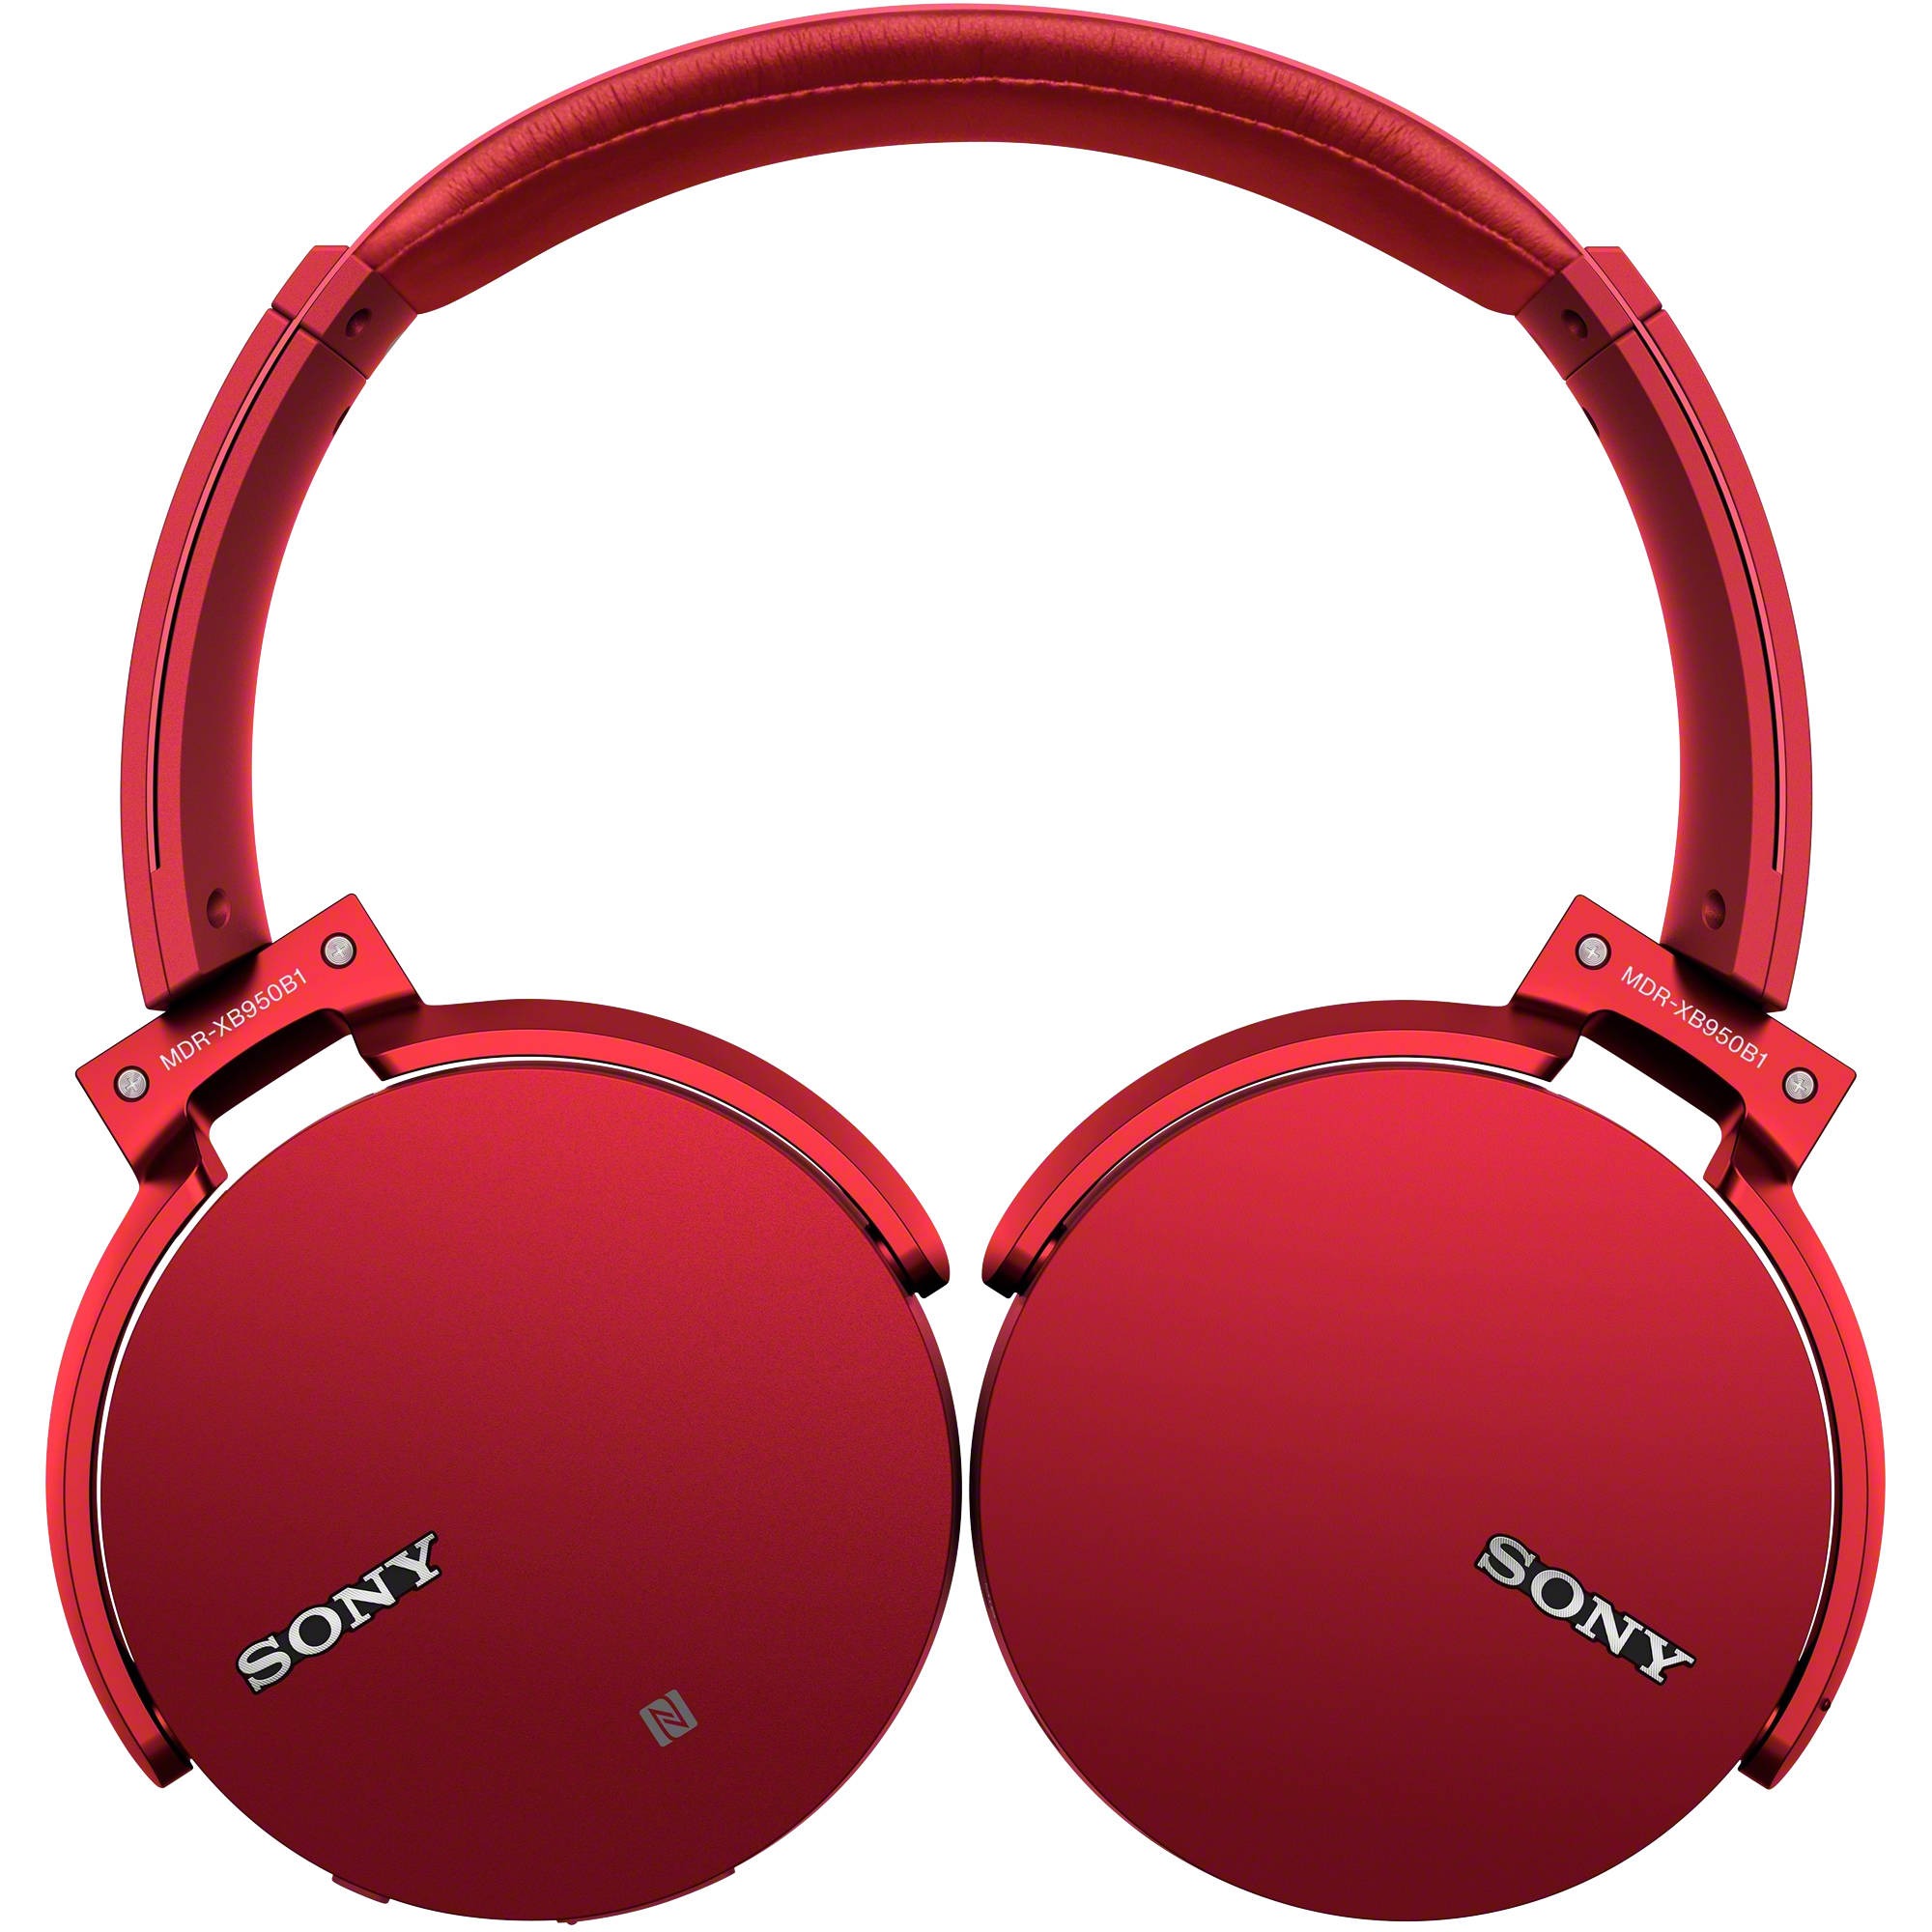 Headphones bluetooth new - sony headphones bluetooth red